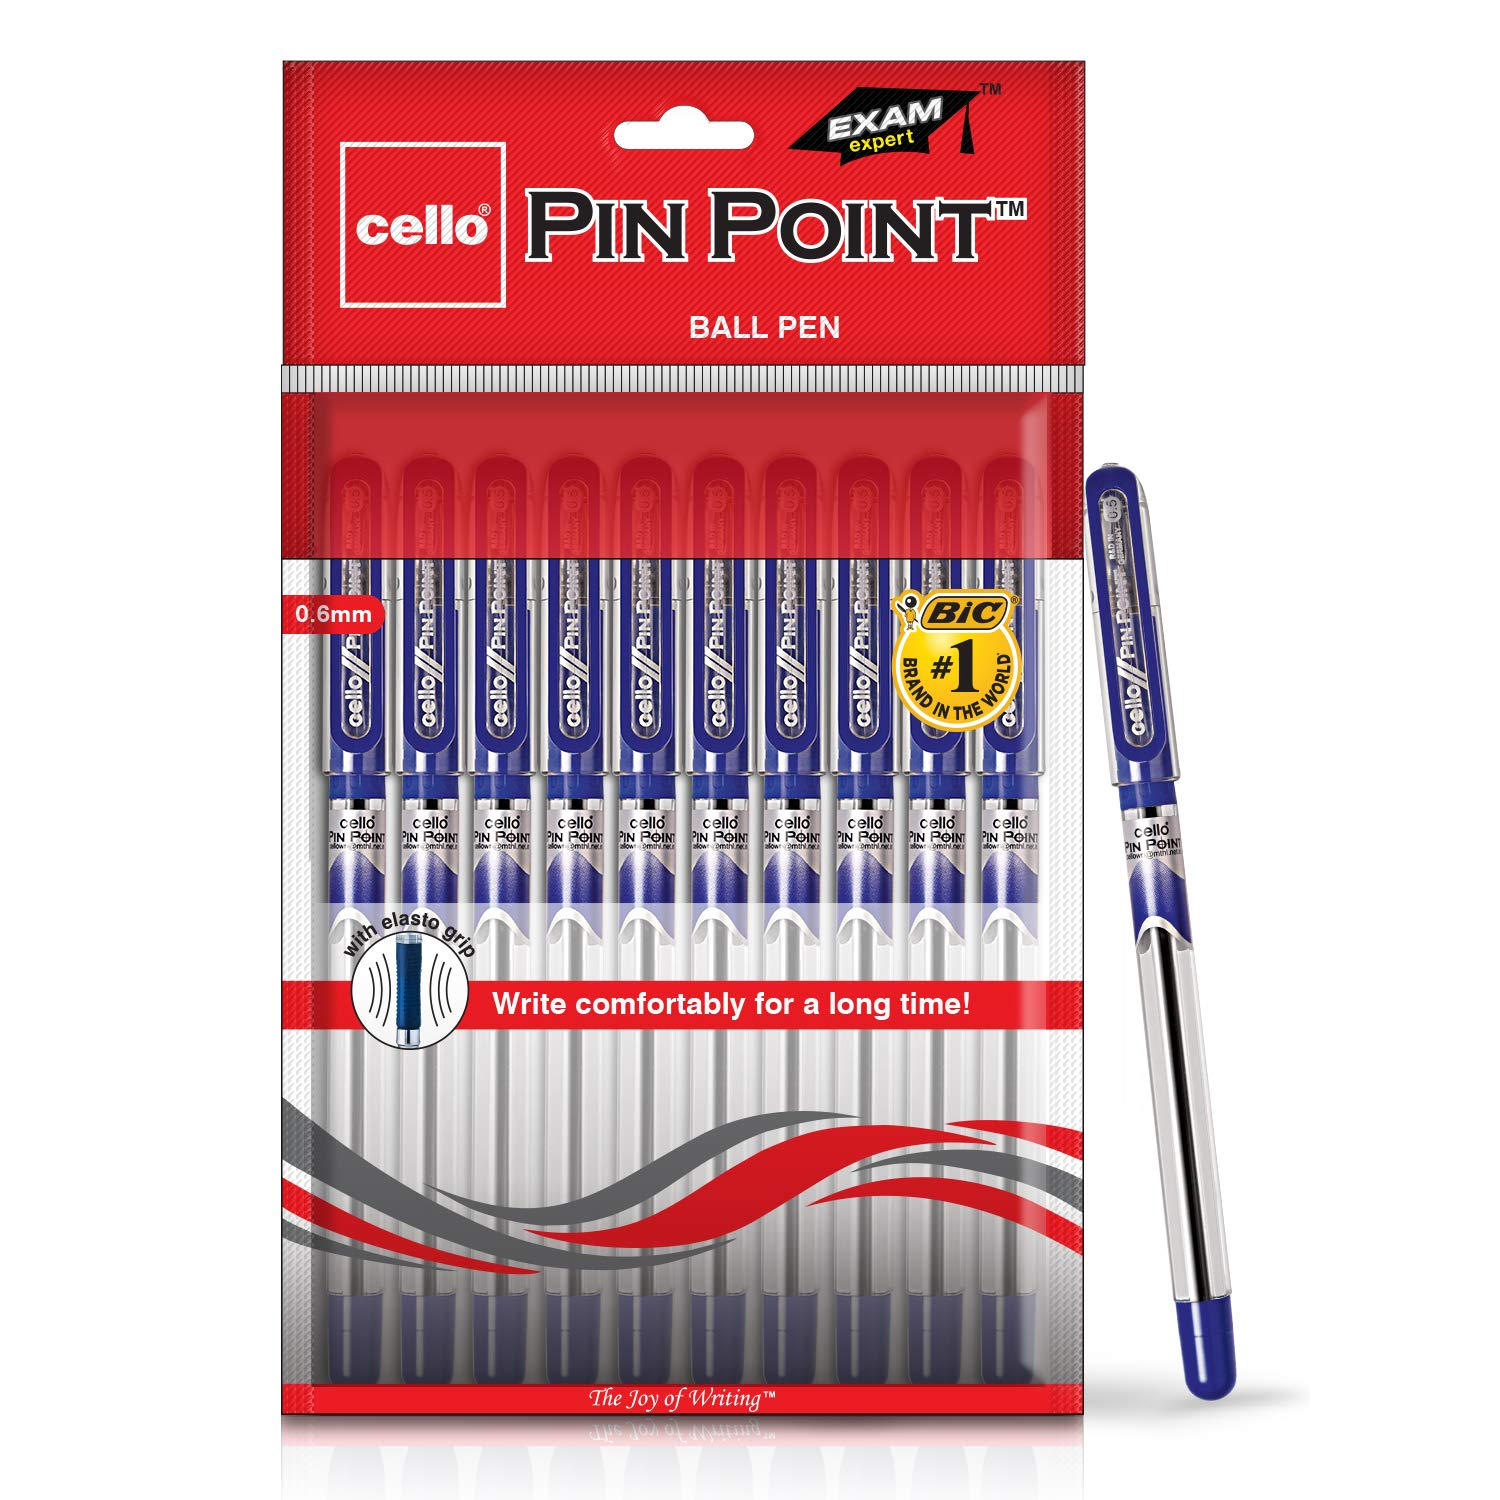 Cello Pinpoint Ball Pen Set - Pack of 10 (Blue) product image